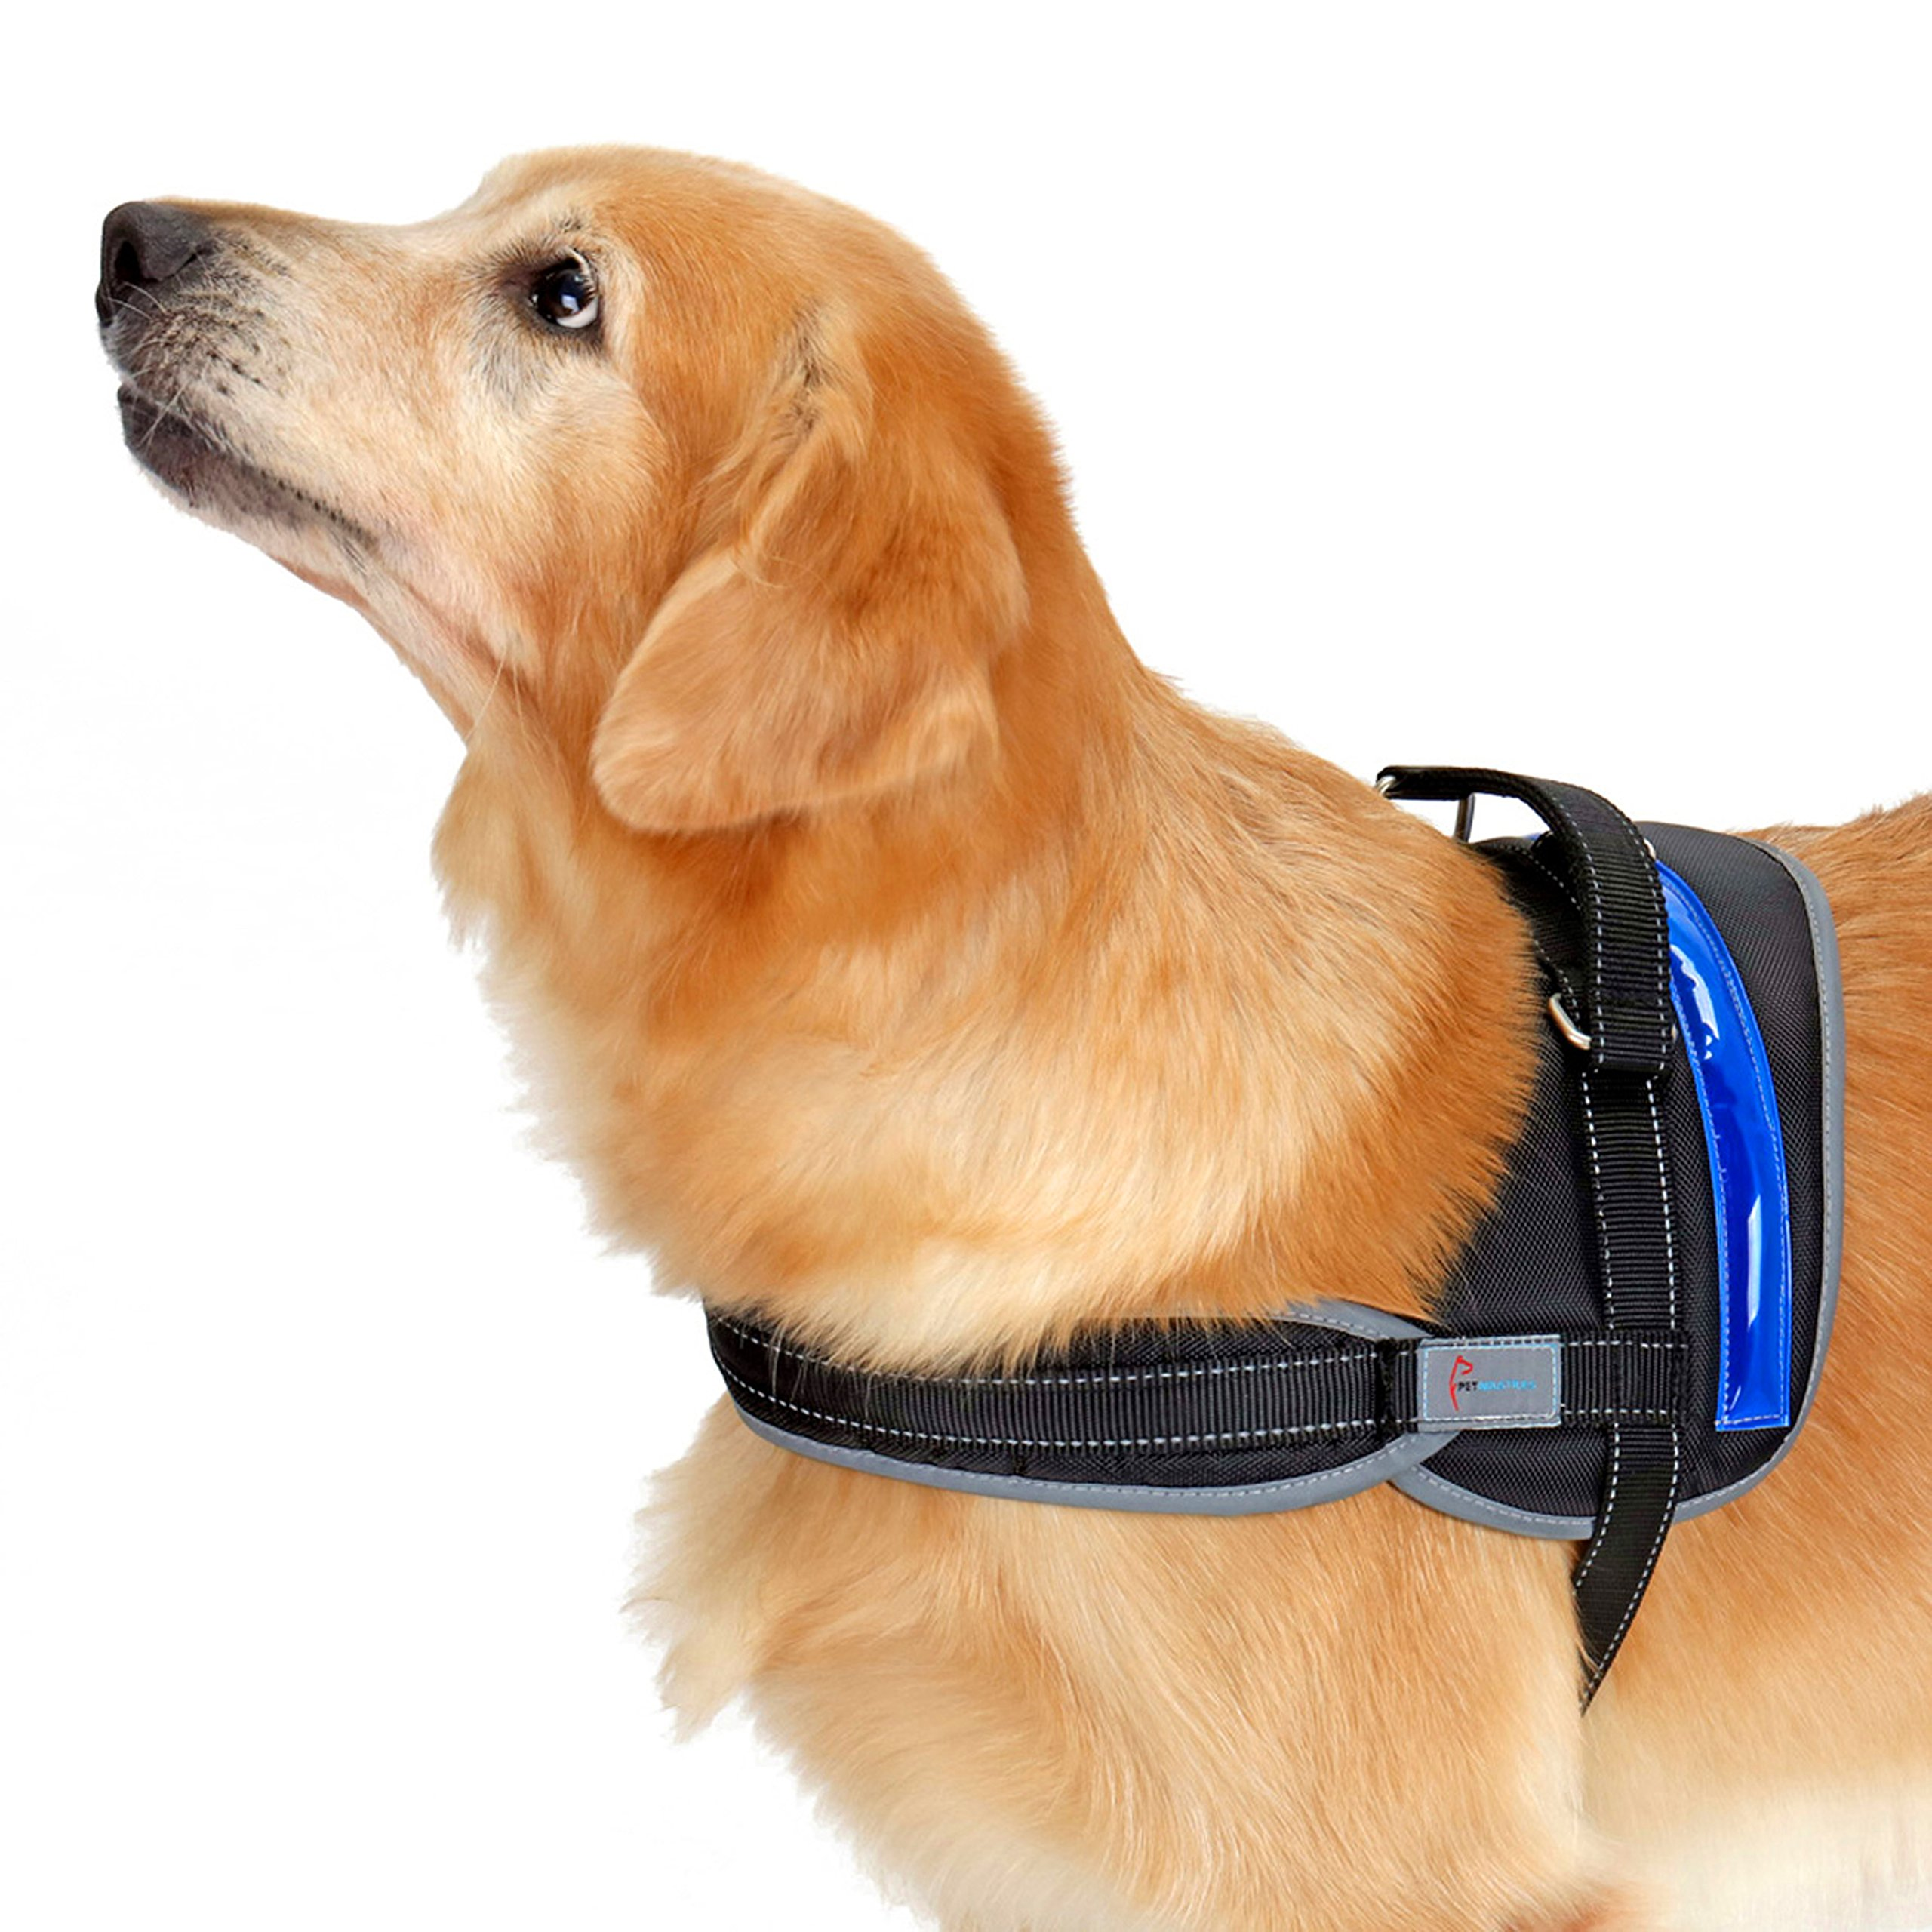 Heavy Duty Reflective Dog Harness with Safety Features [Premium Edition] Available in 4 Sizes, Specially Designed for Medium-Large Dog Breeds (Large, Electric Blue) by Pet Industries (Image #1)